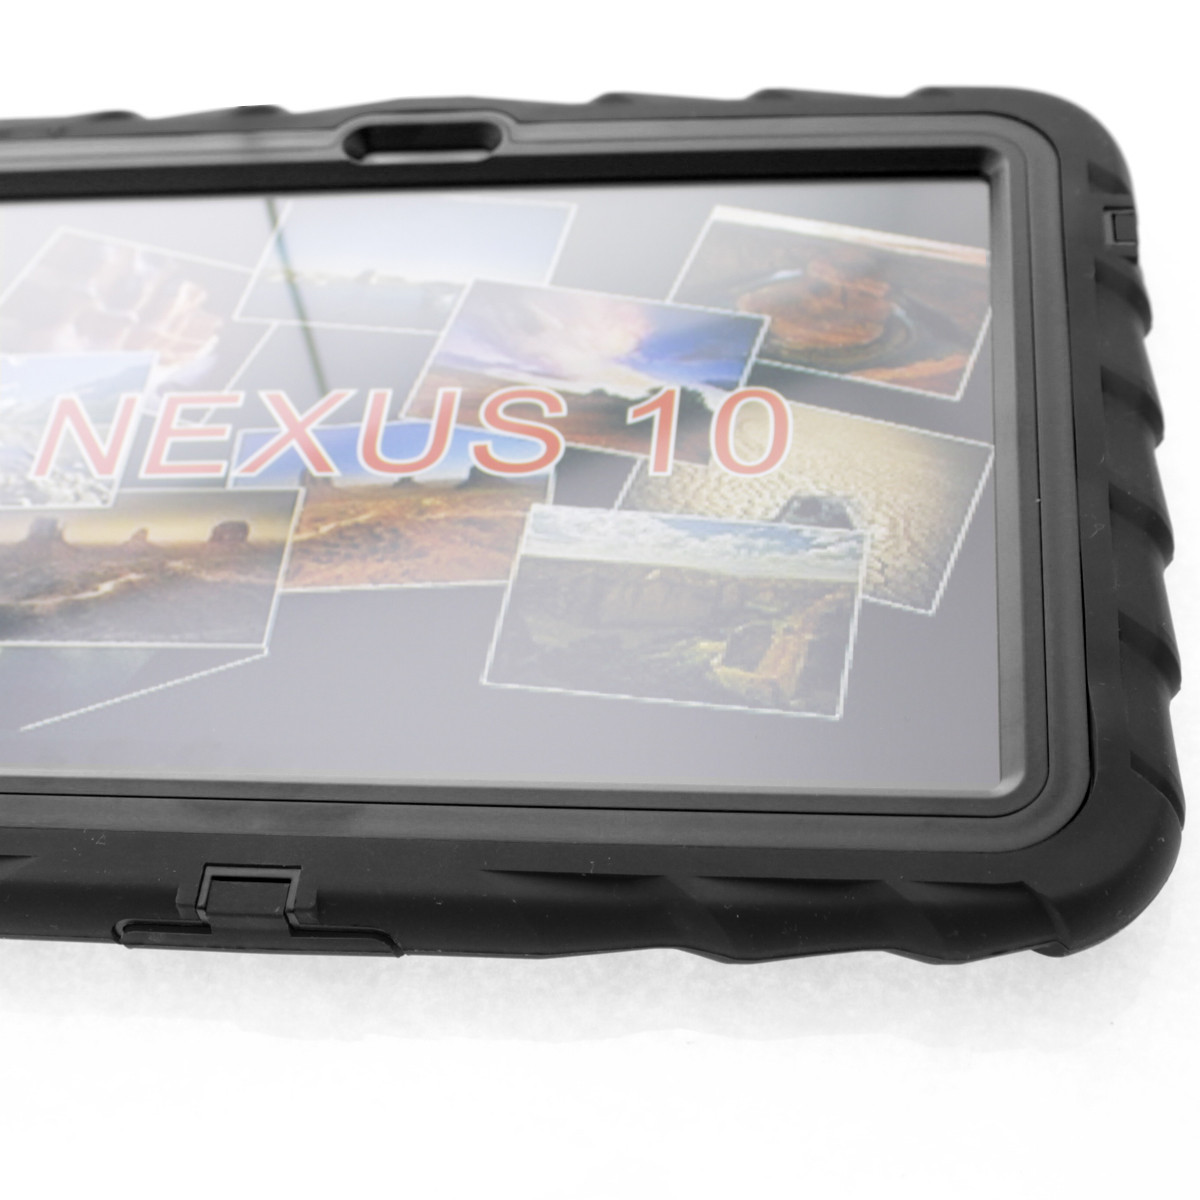 Gumdrop Cases Droptech For Google Nexus 10 Rugged Tablet Case Shock Absorbing Cover P8110 Com